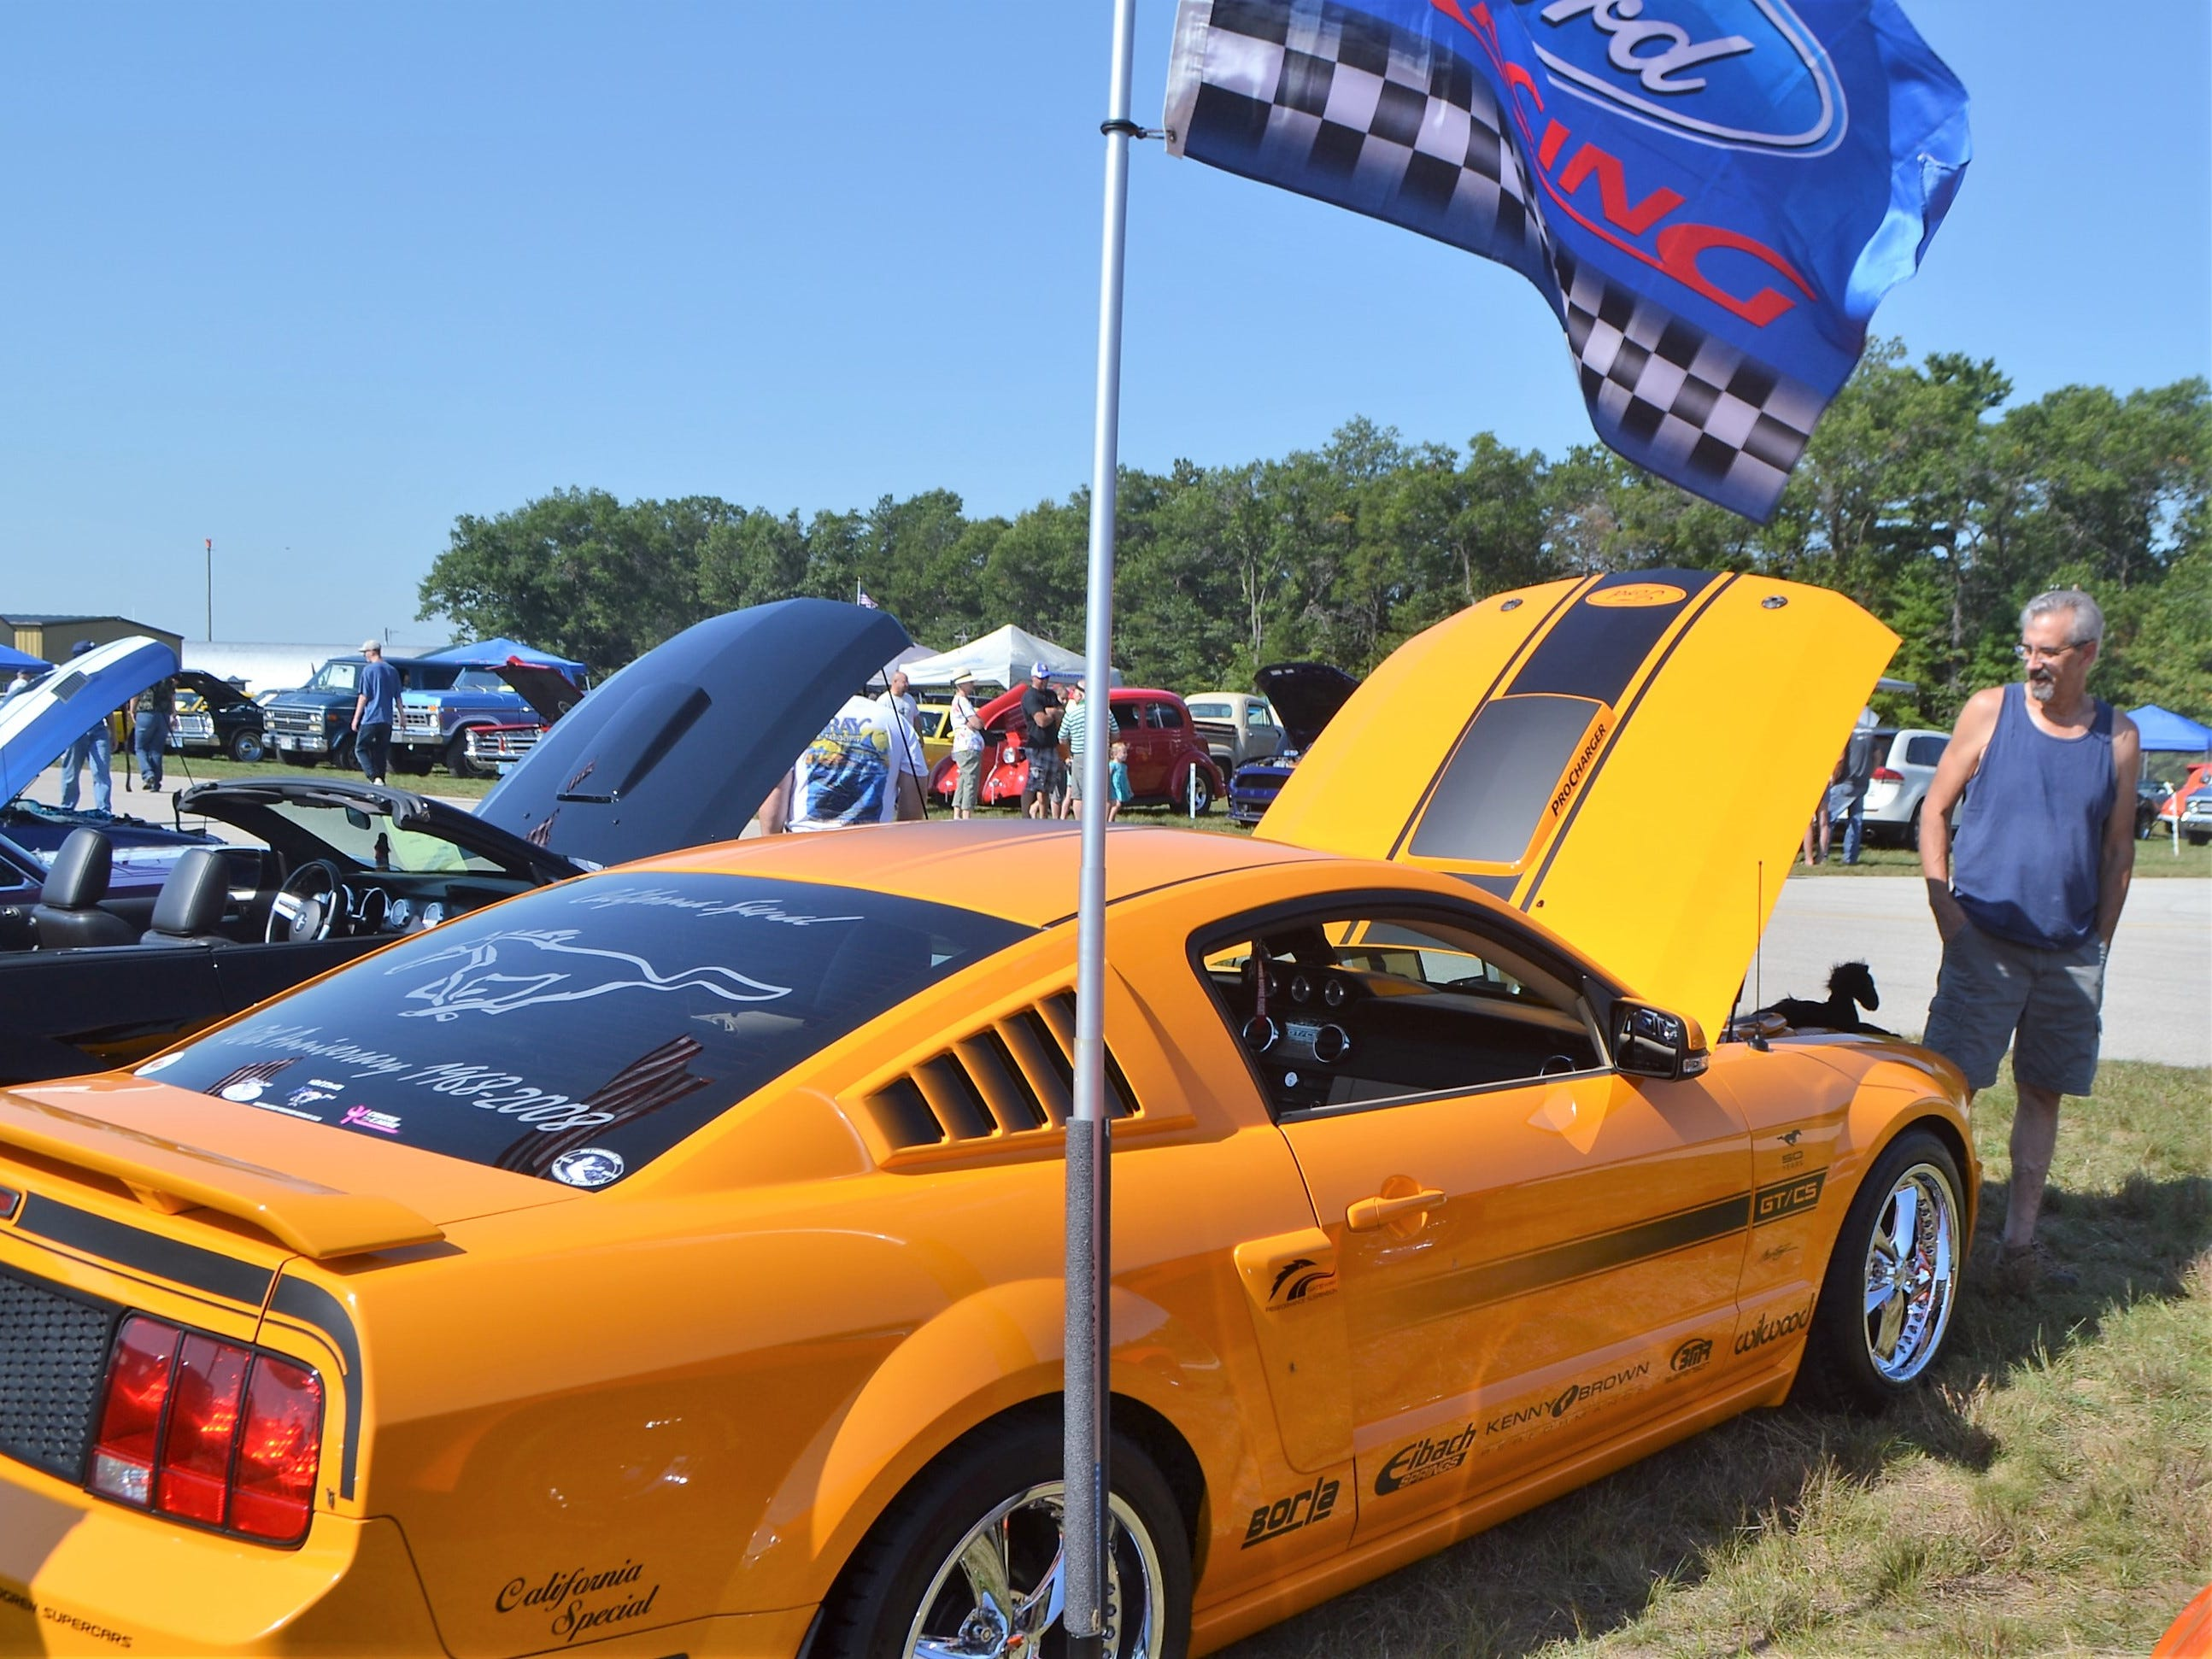 John Duca of Coleman admires a customized 2008 Mustang at the Oconto Fly-in, Car & Tractor Show on Sept. 15 at the Oconto-J. Douglas Bake Municipal Airport.